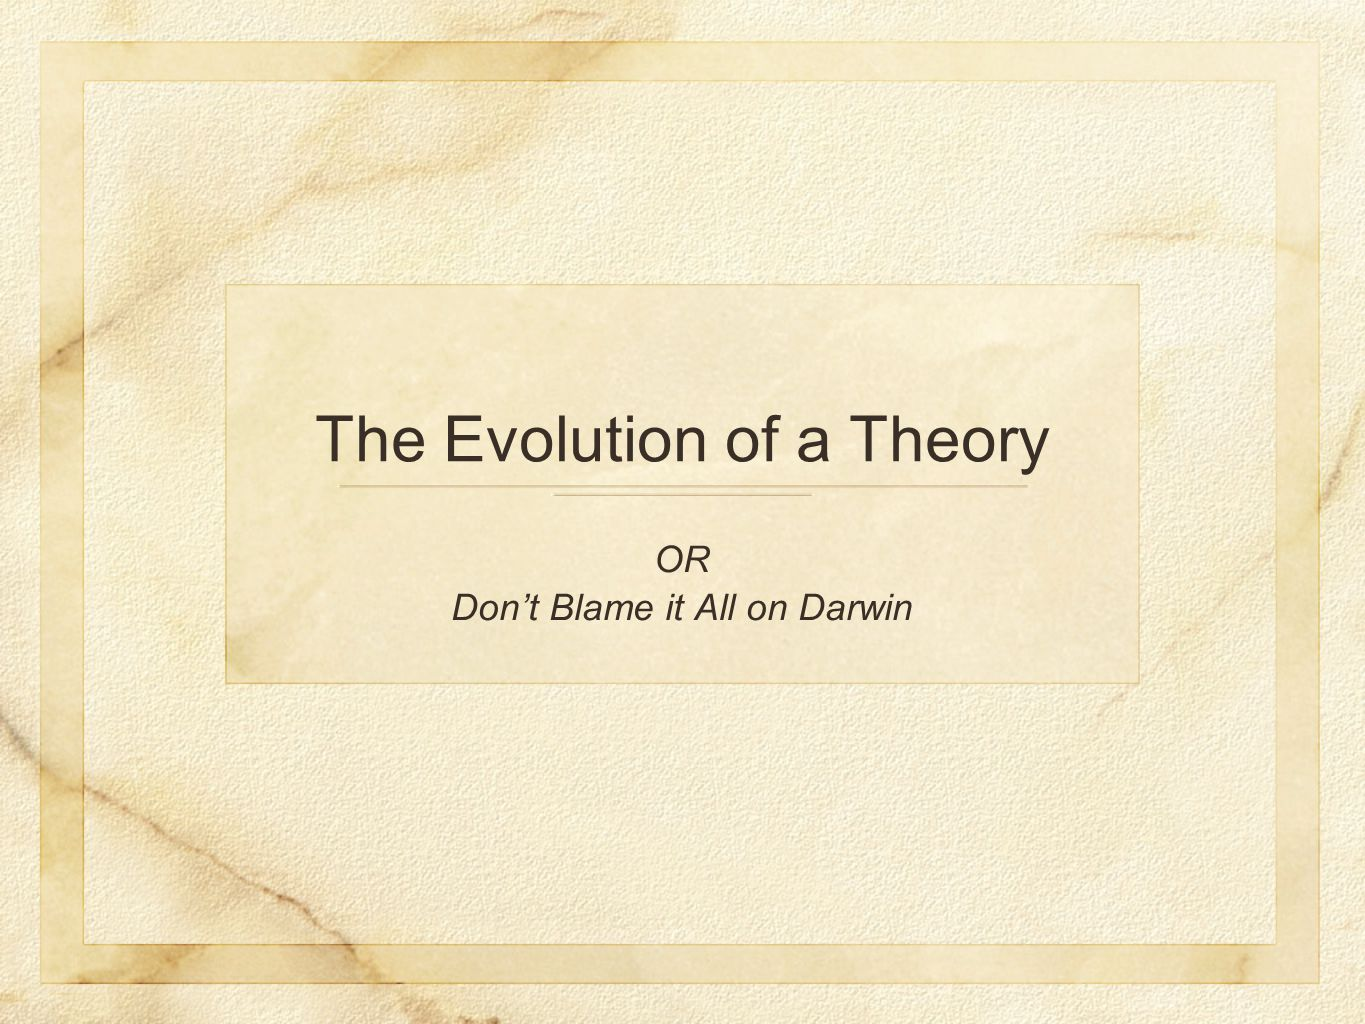 The Evolution of a Theory OR Don't Blame it All on Darwin